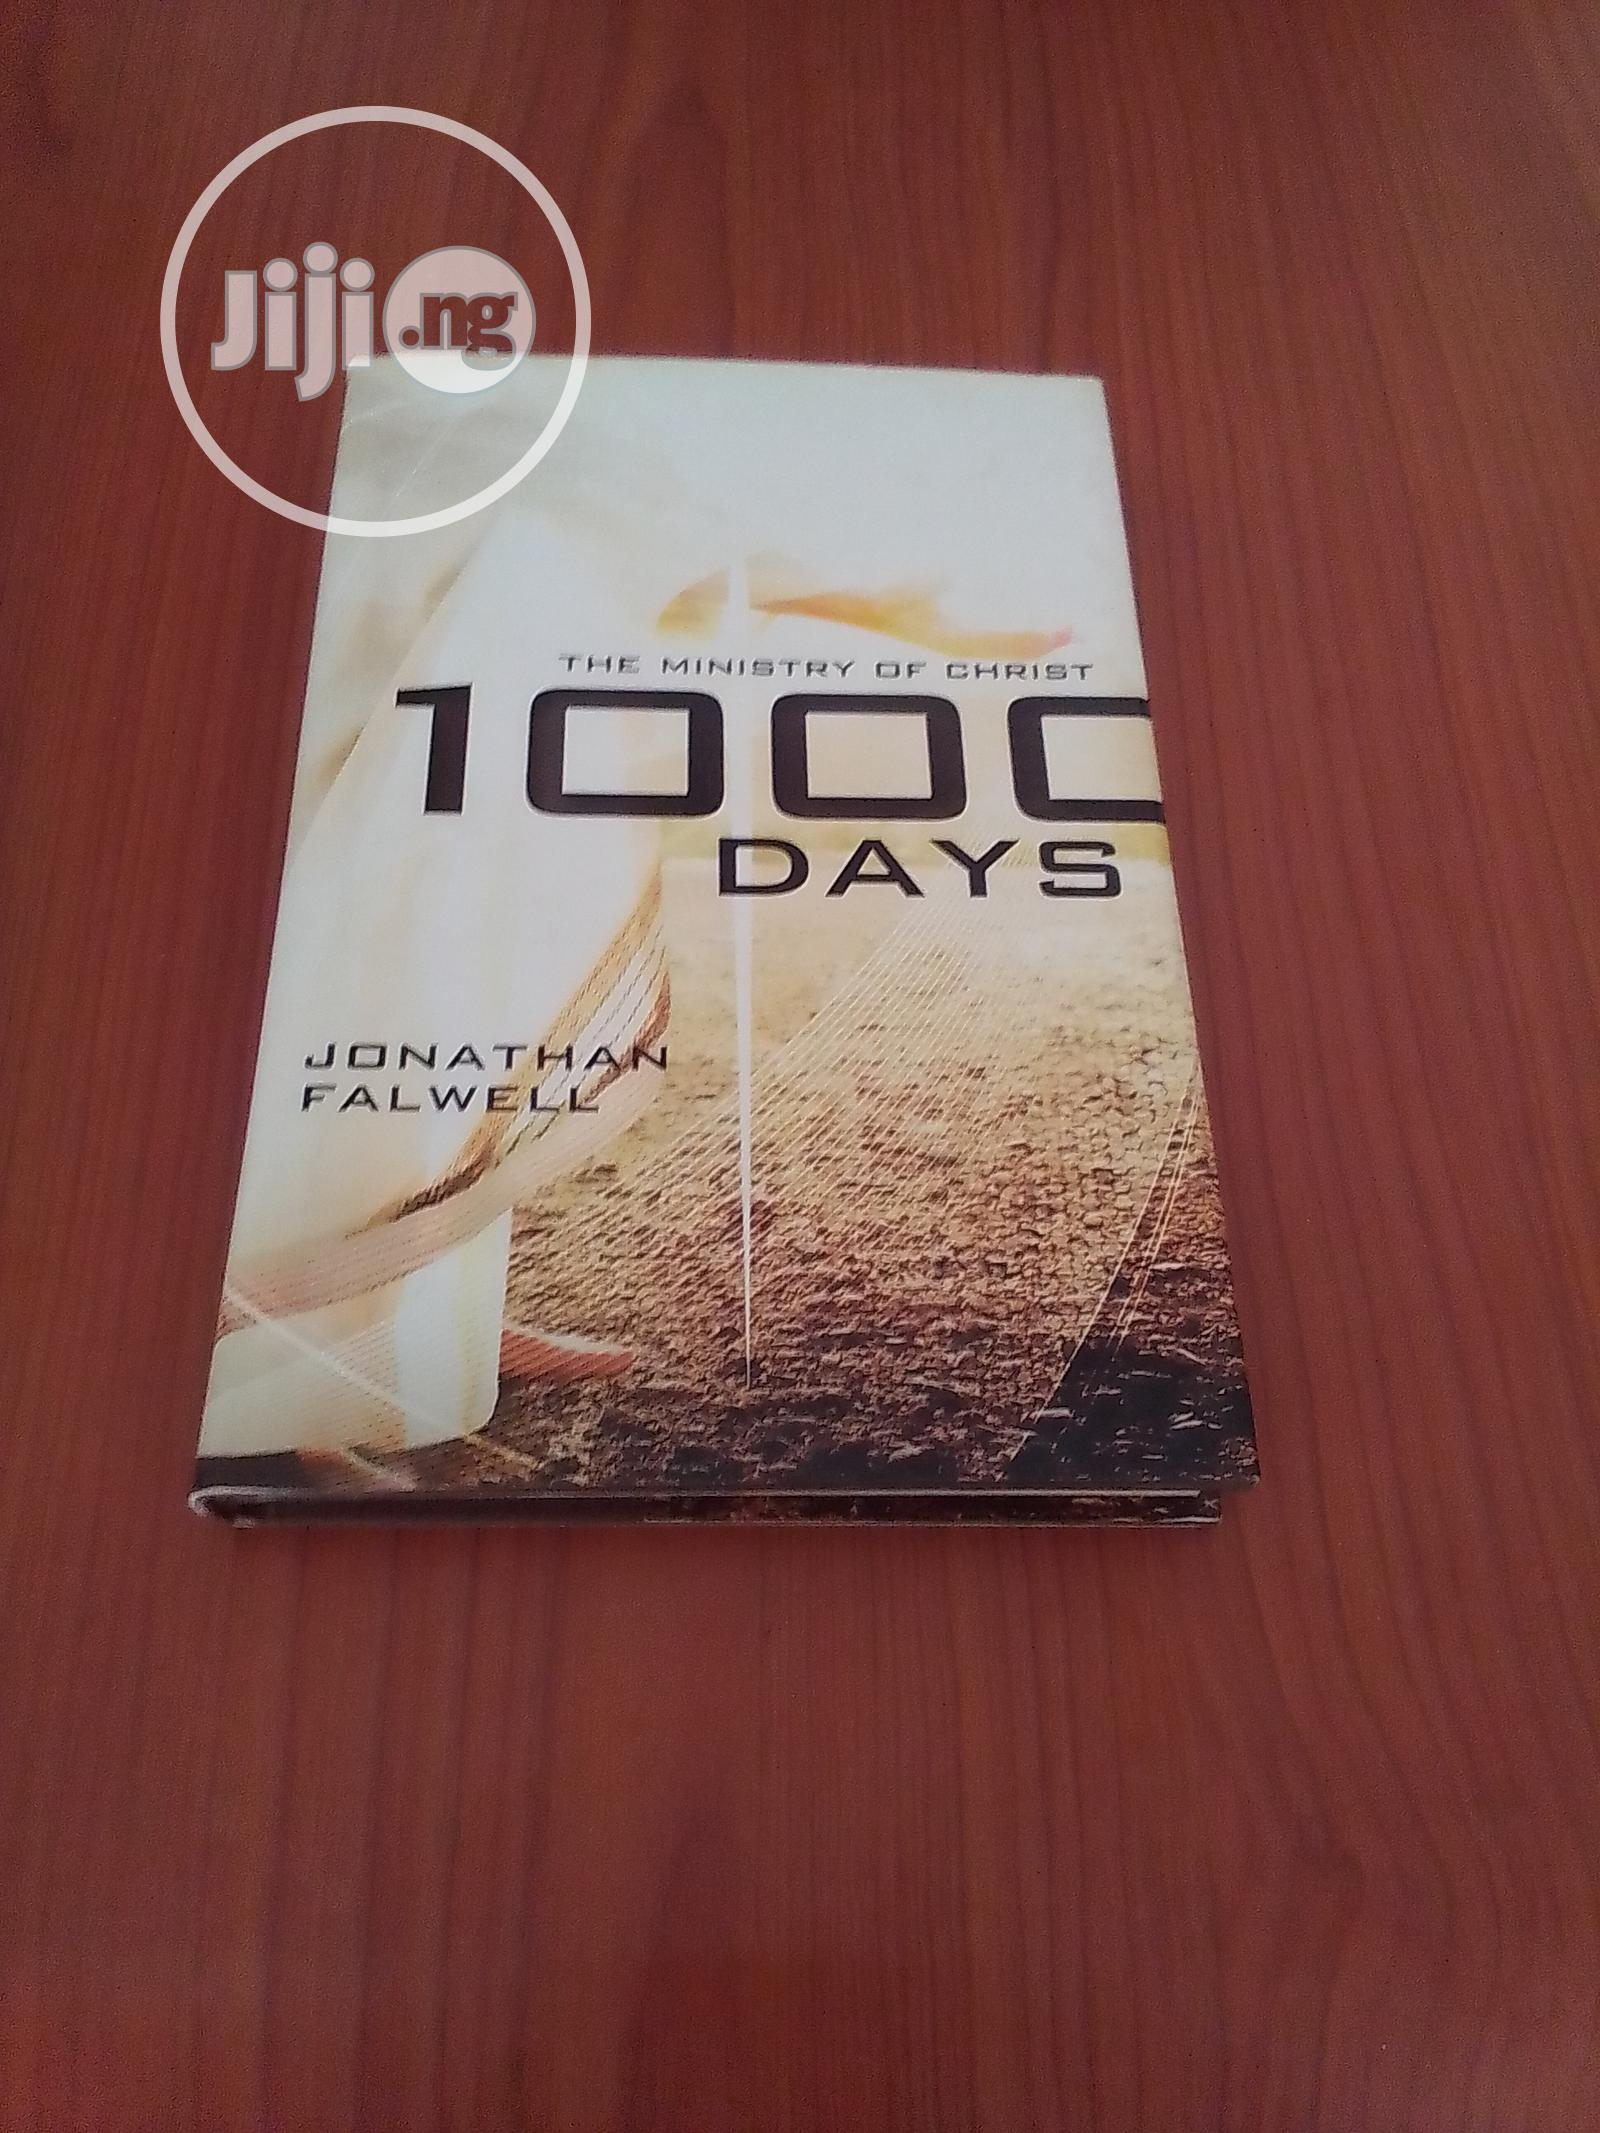 Archive: 1000 Days: The Ministry Of Christ